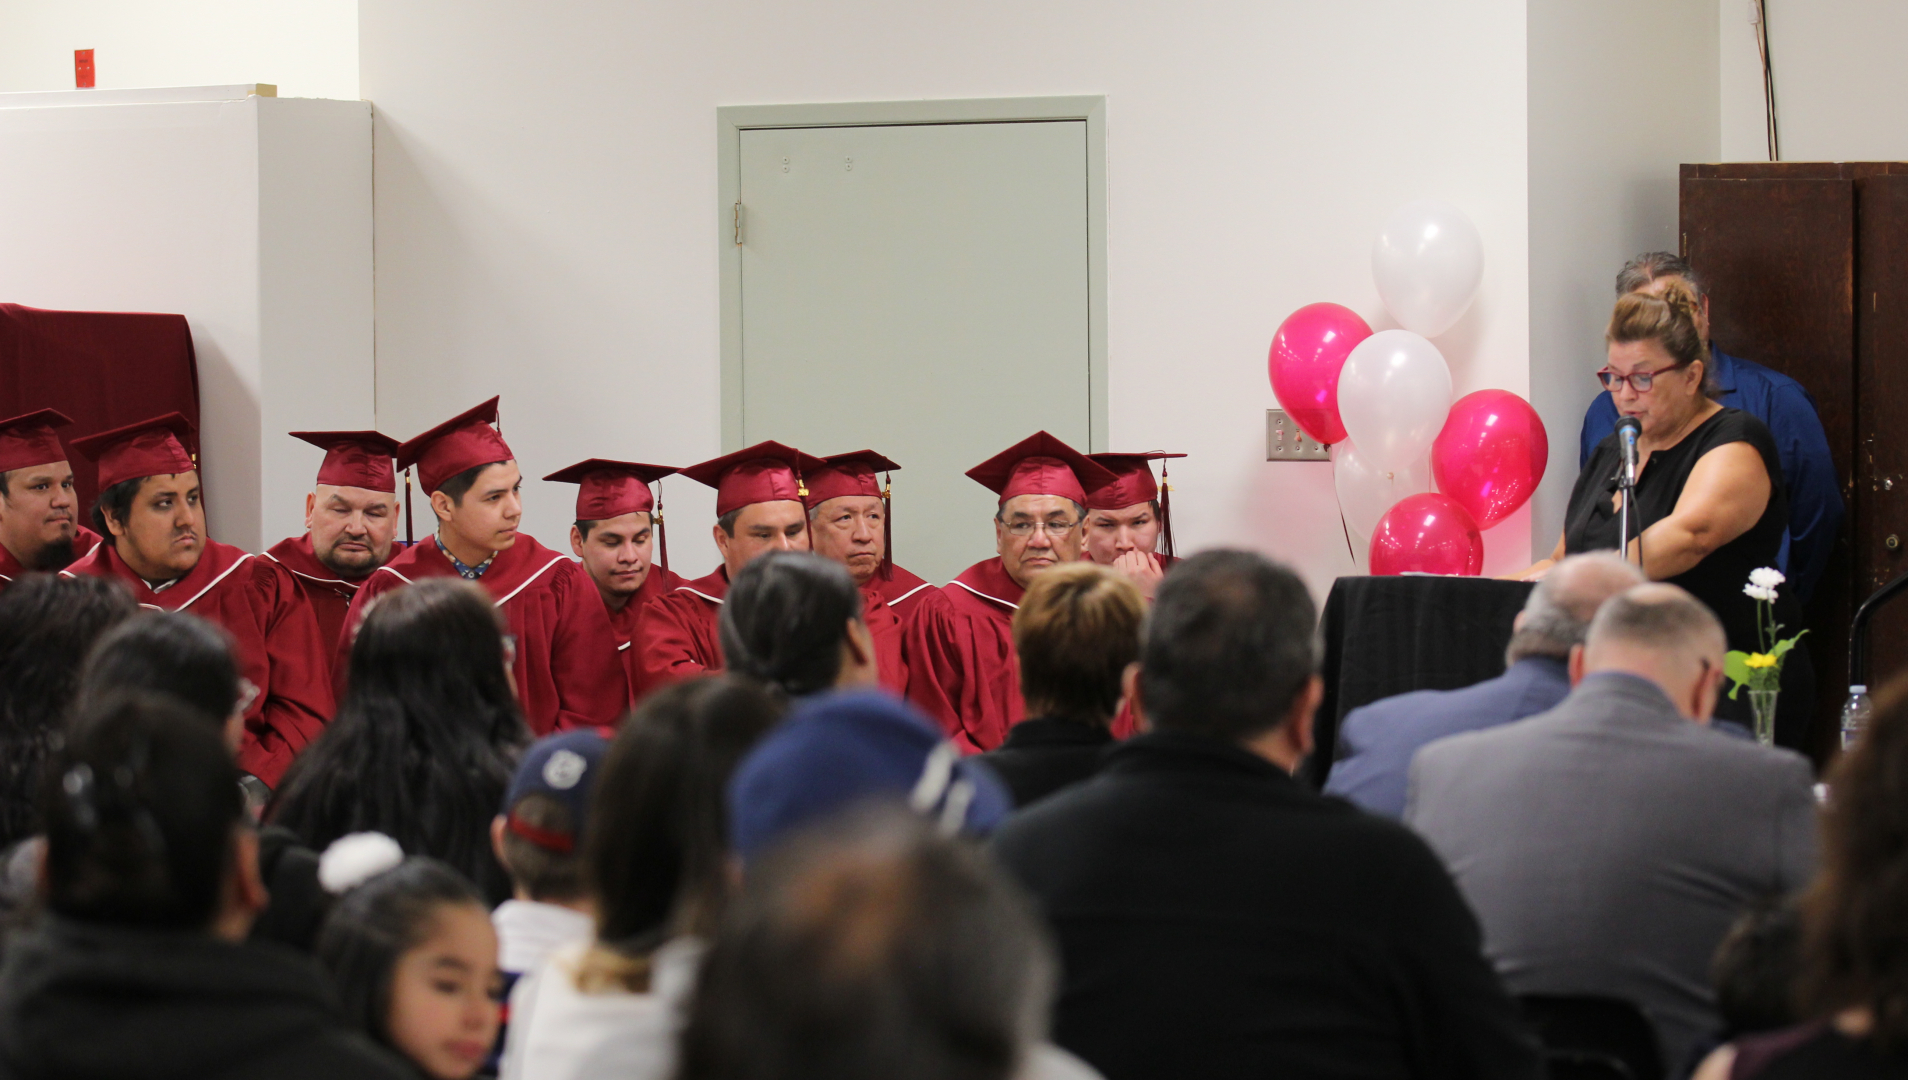 Plumbing graduates listen to a speaker at their graduation ceremony